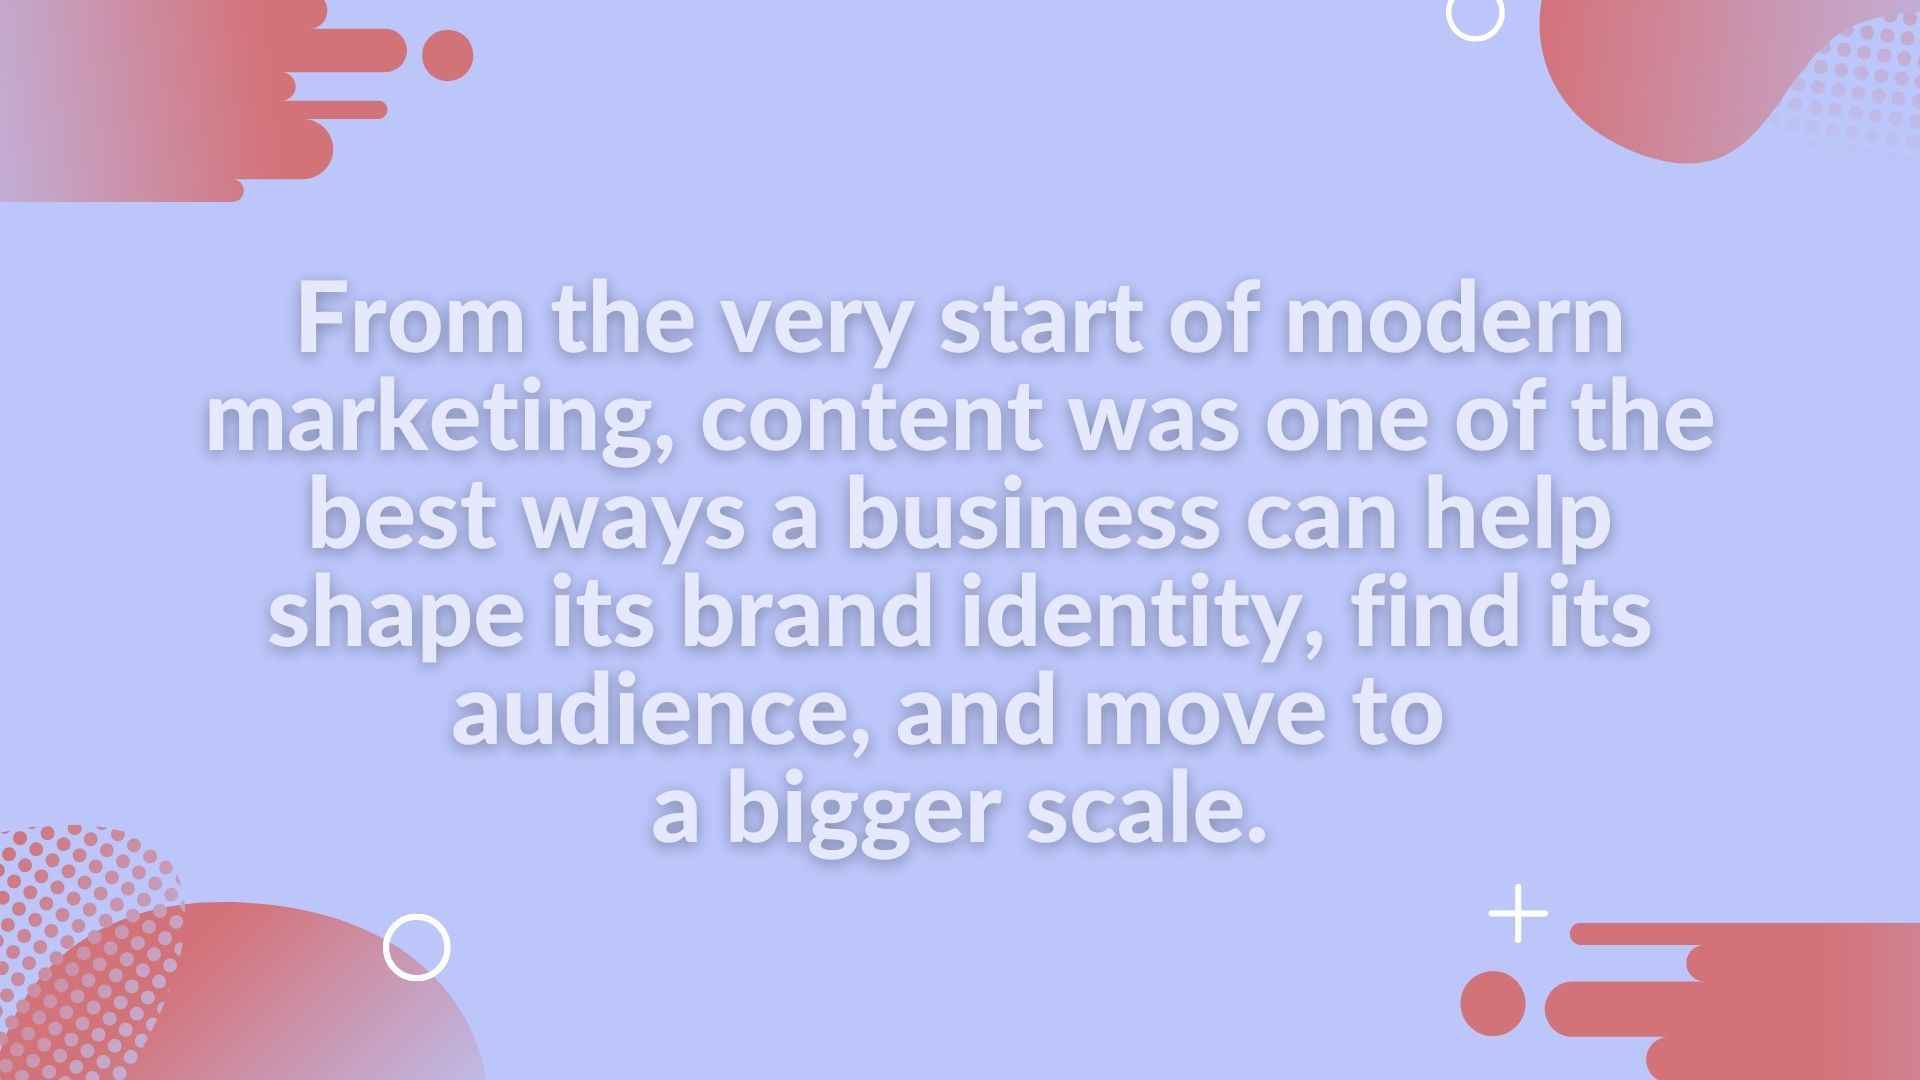 From the very start of modern marketing, content was one of the best ways a business can help shape its brand identity, find its audience, and move to a bigger scale